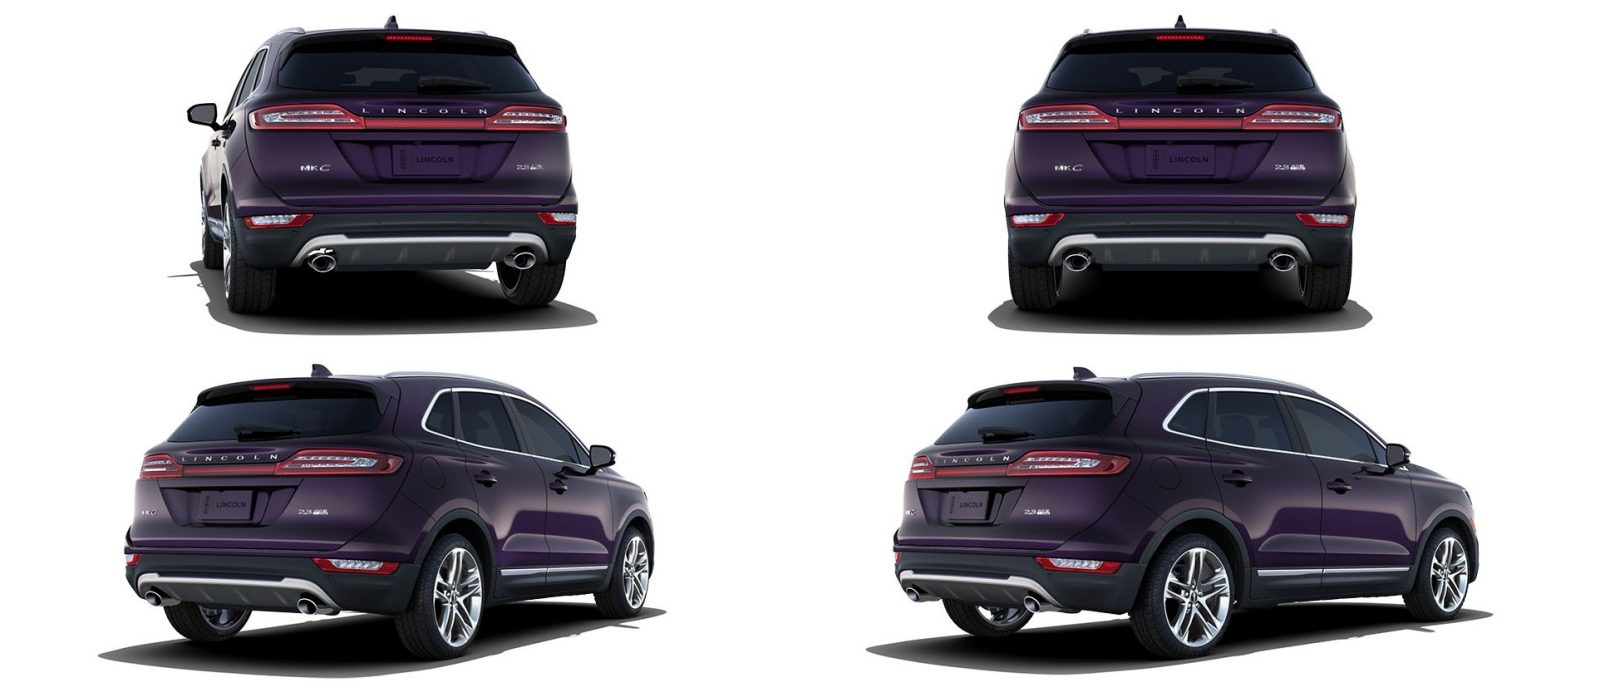 2015 Lincoln MKC Crossover - A Cool Mix of Infiniti and Audi99